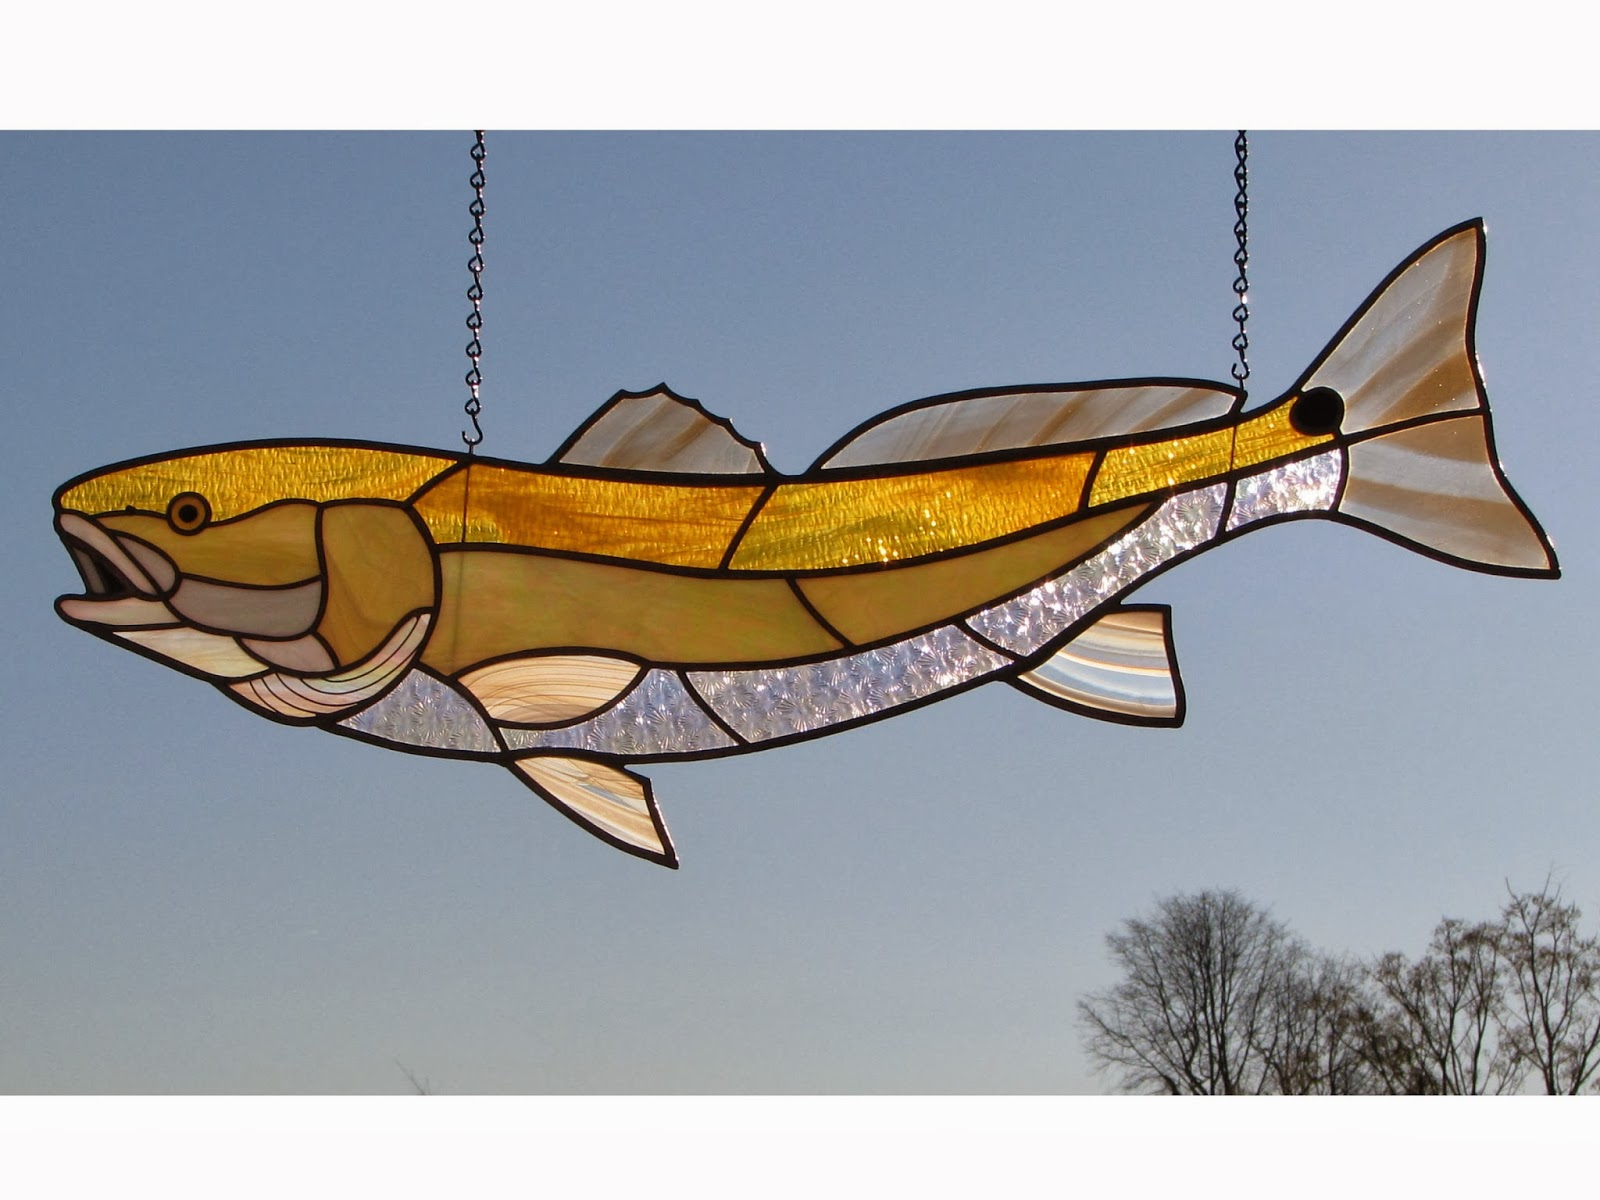 Stained glass taxidermy for Stained glass fish patterns